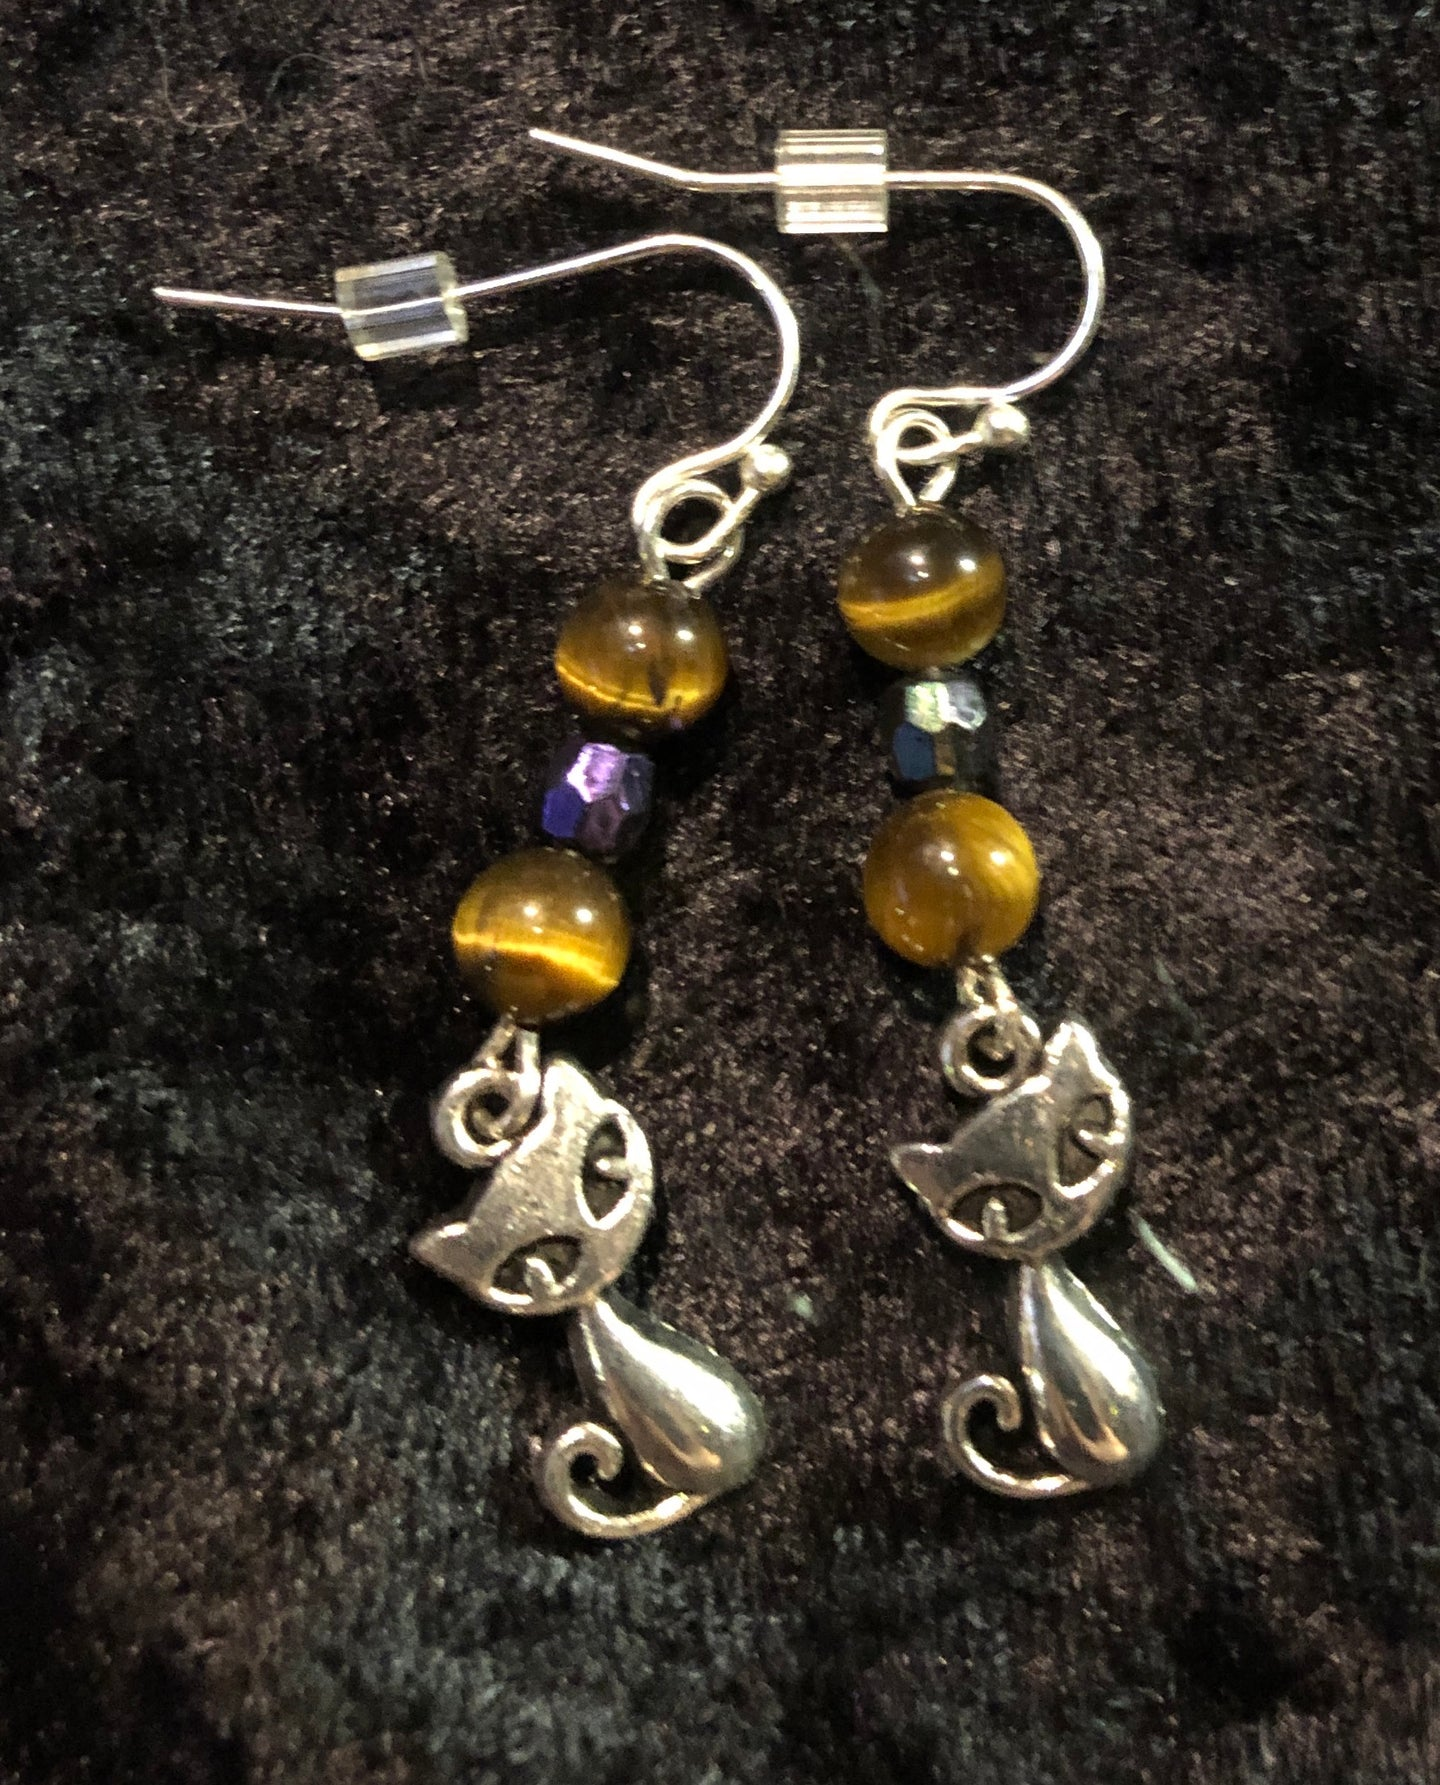 Cats with Tiger's Eye Bead Earrings